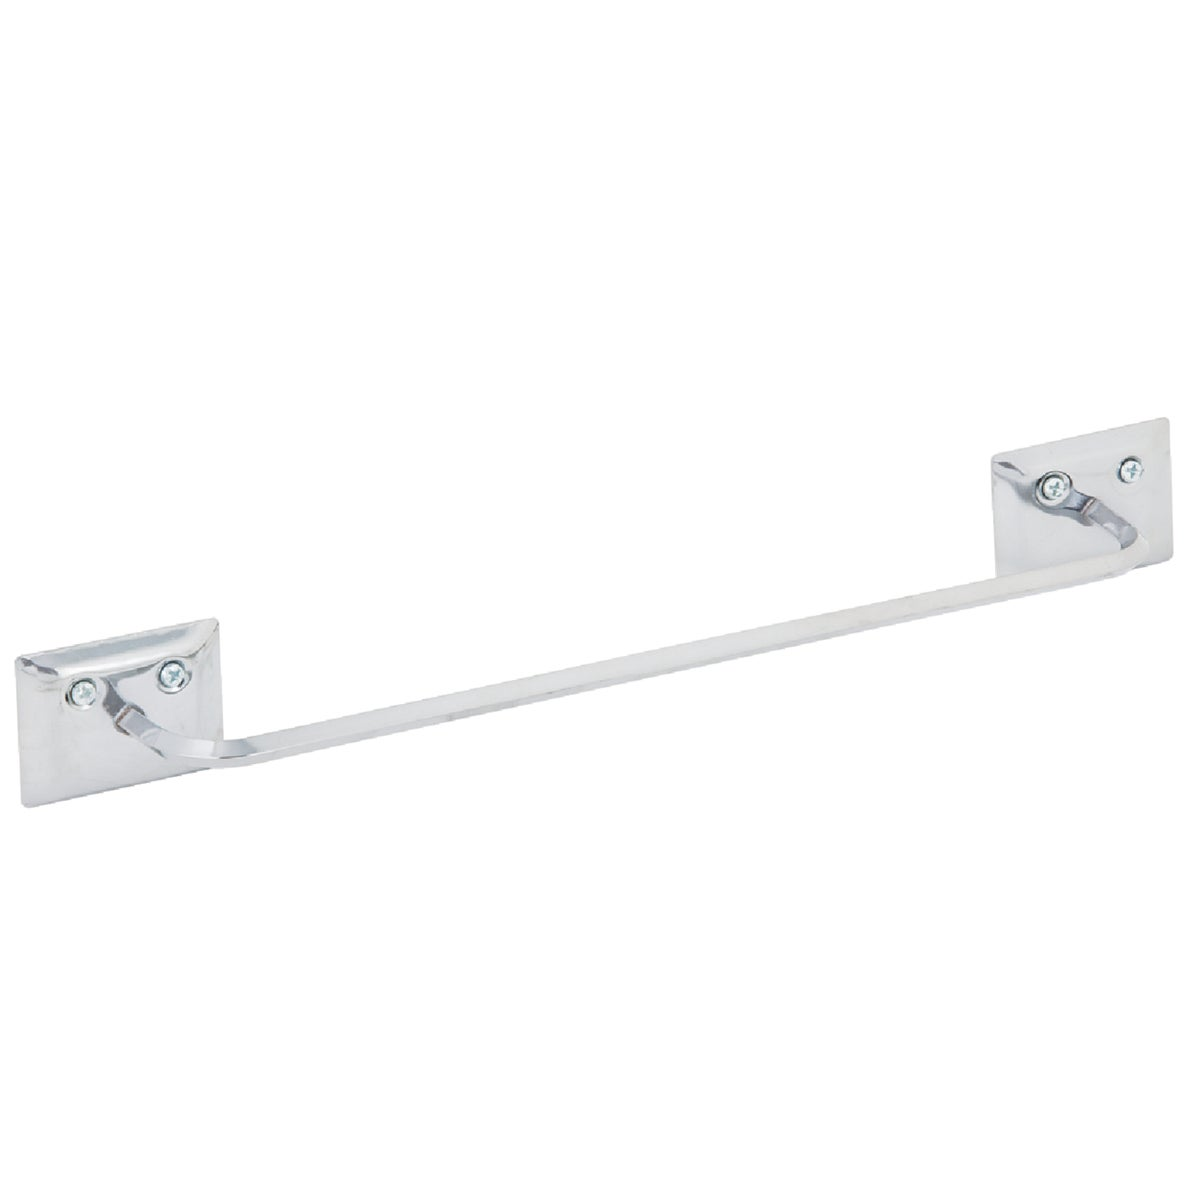 "12"" CHROME TOWEL BAR"